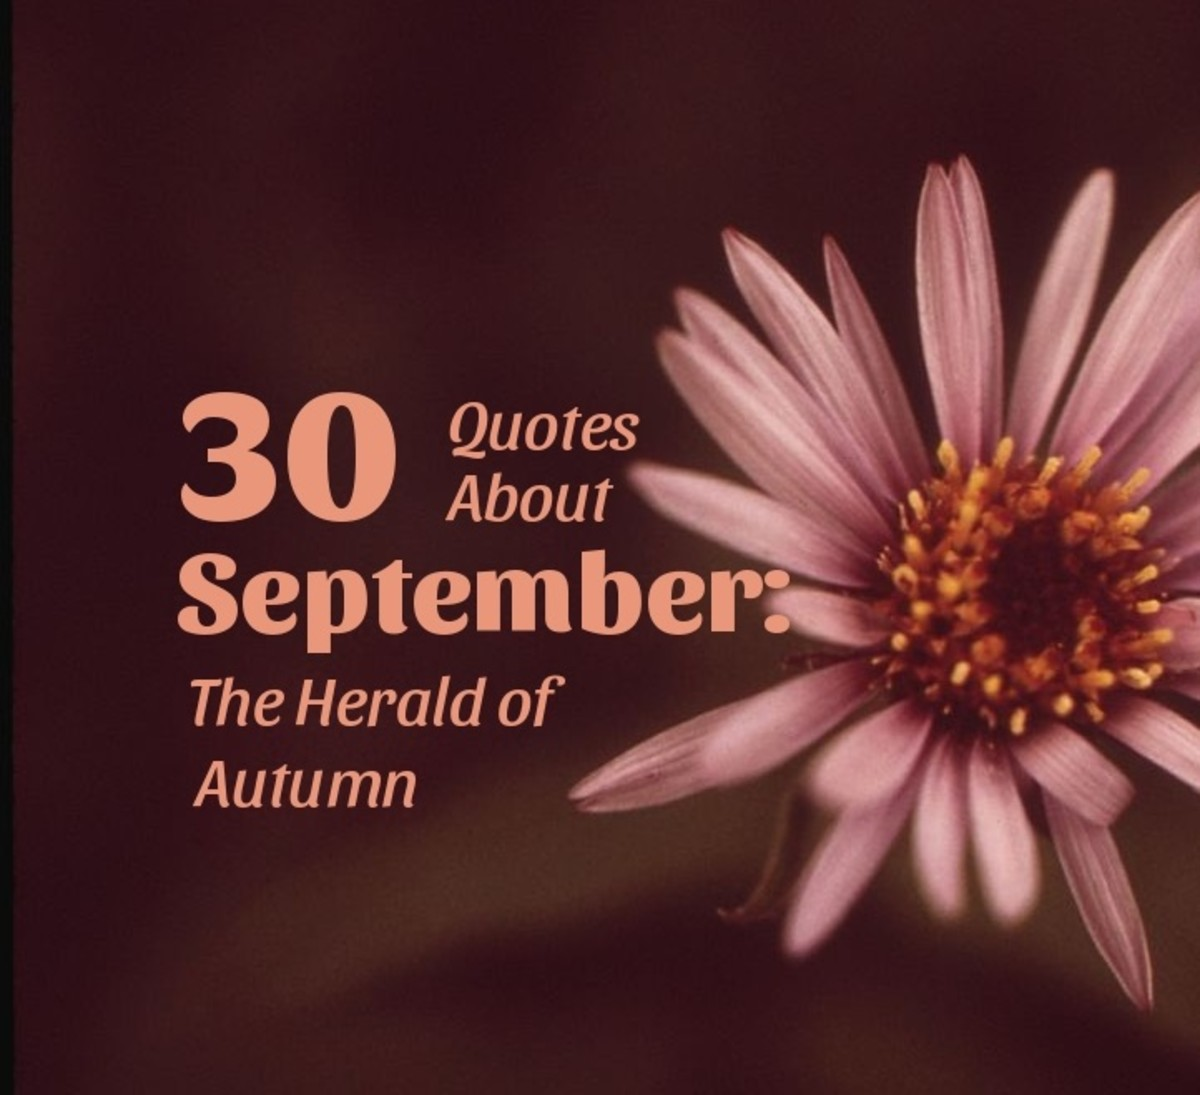 30 Quotes About September: The Herald of Autumn